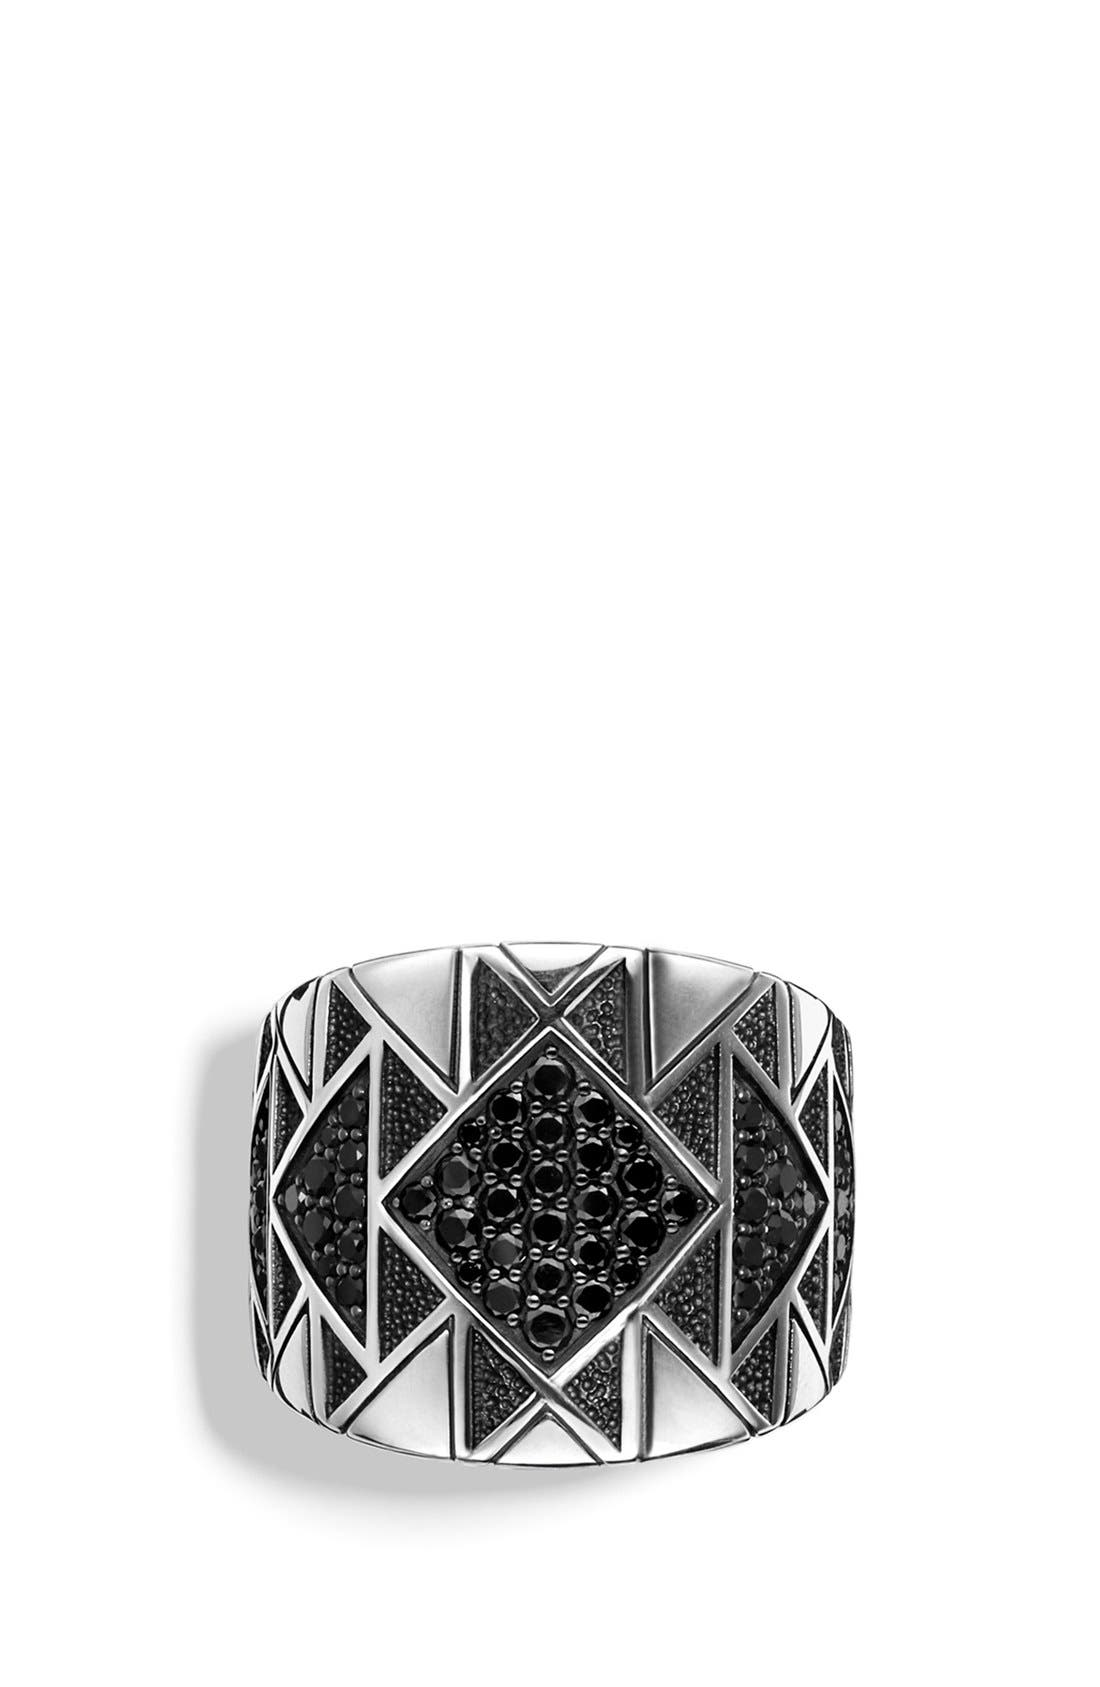 Southwest Signet Ring with Black Diamonds,                             Alternate thumbnail 2, color,                             Black Diamond